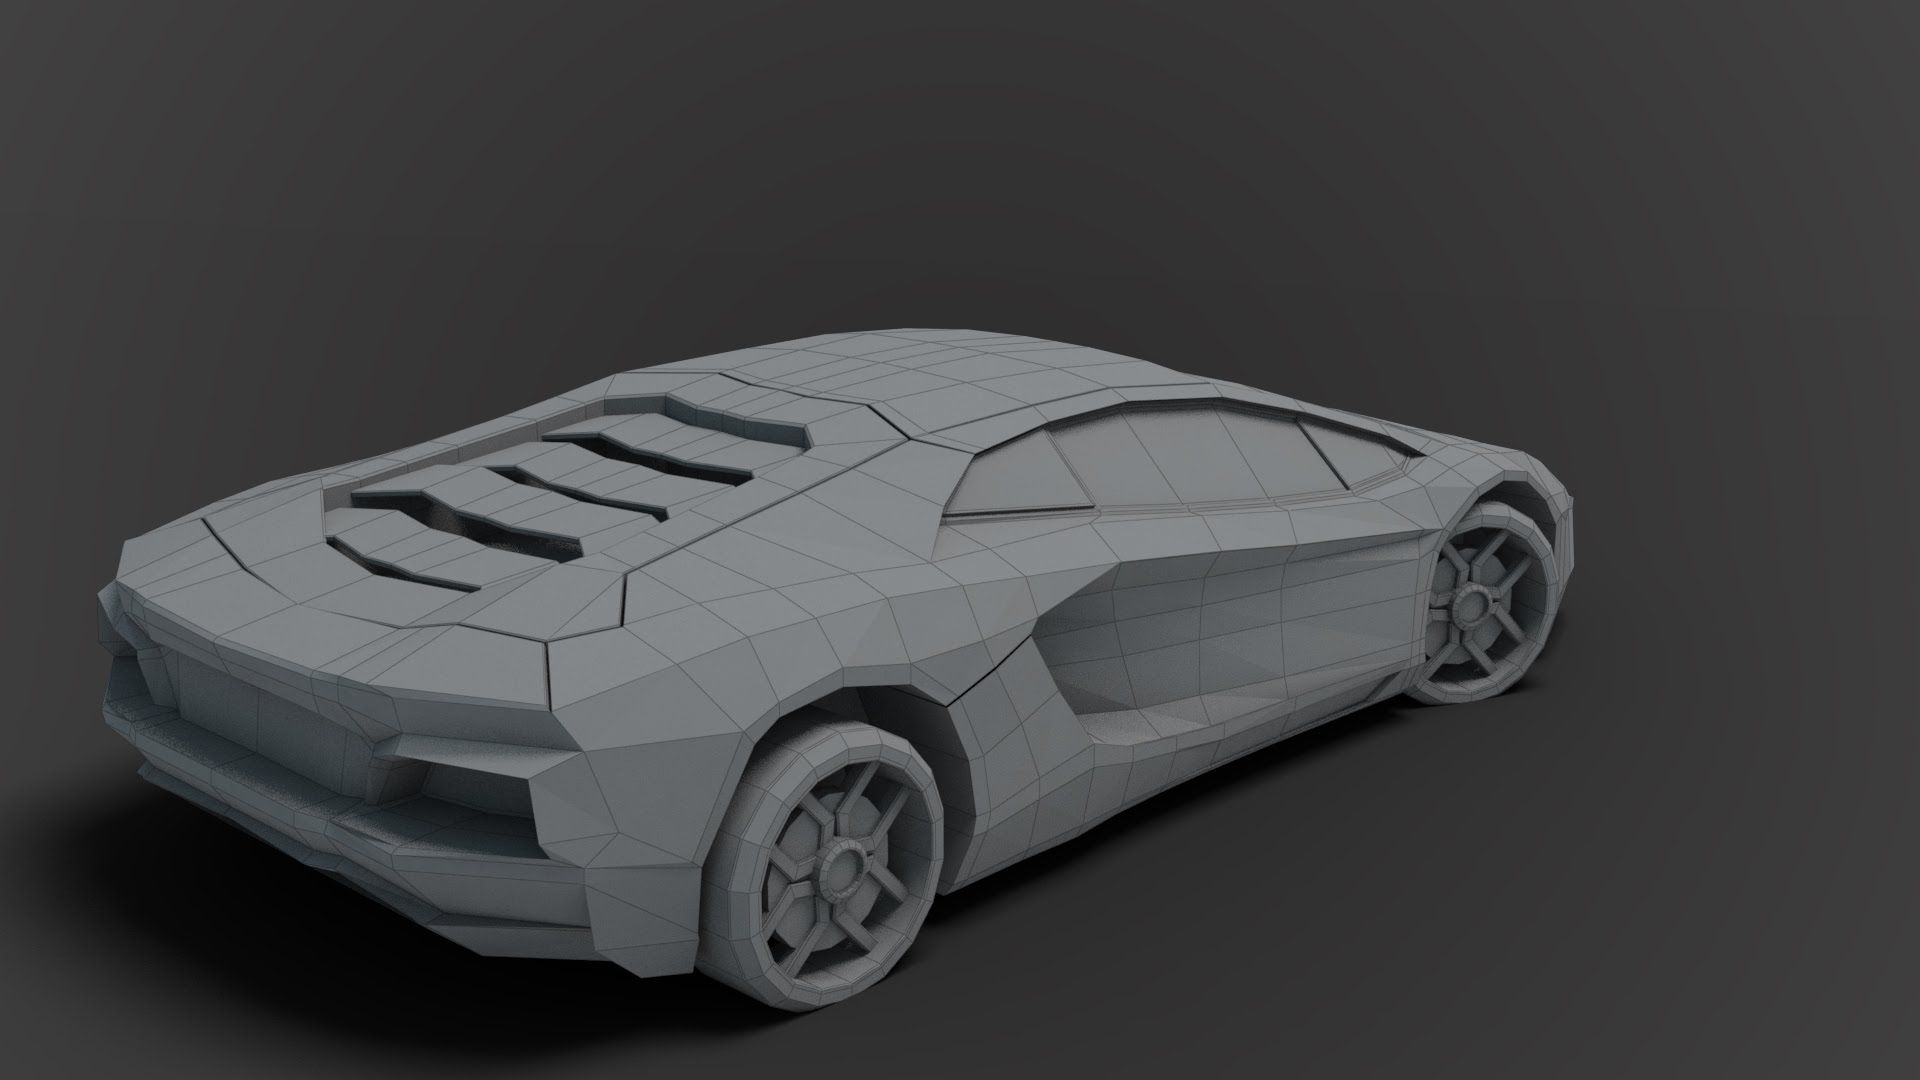 Modeling low poly lamborghini 3ds max beginner tutorial blueprint modeling low poly lamborghini 3ds max beginner tutorial blueprint setup not included note be careful malvernweather